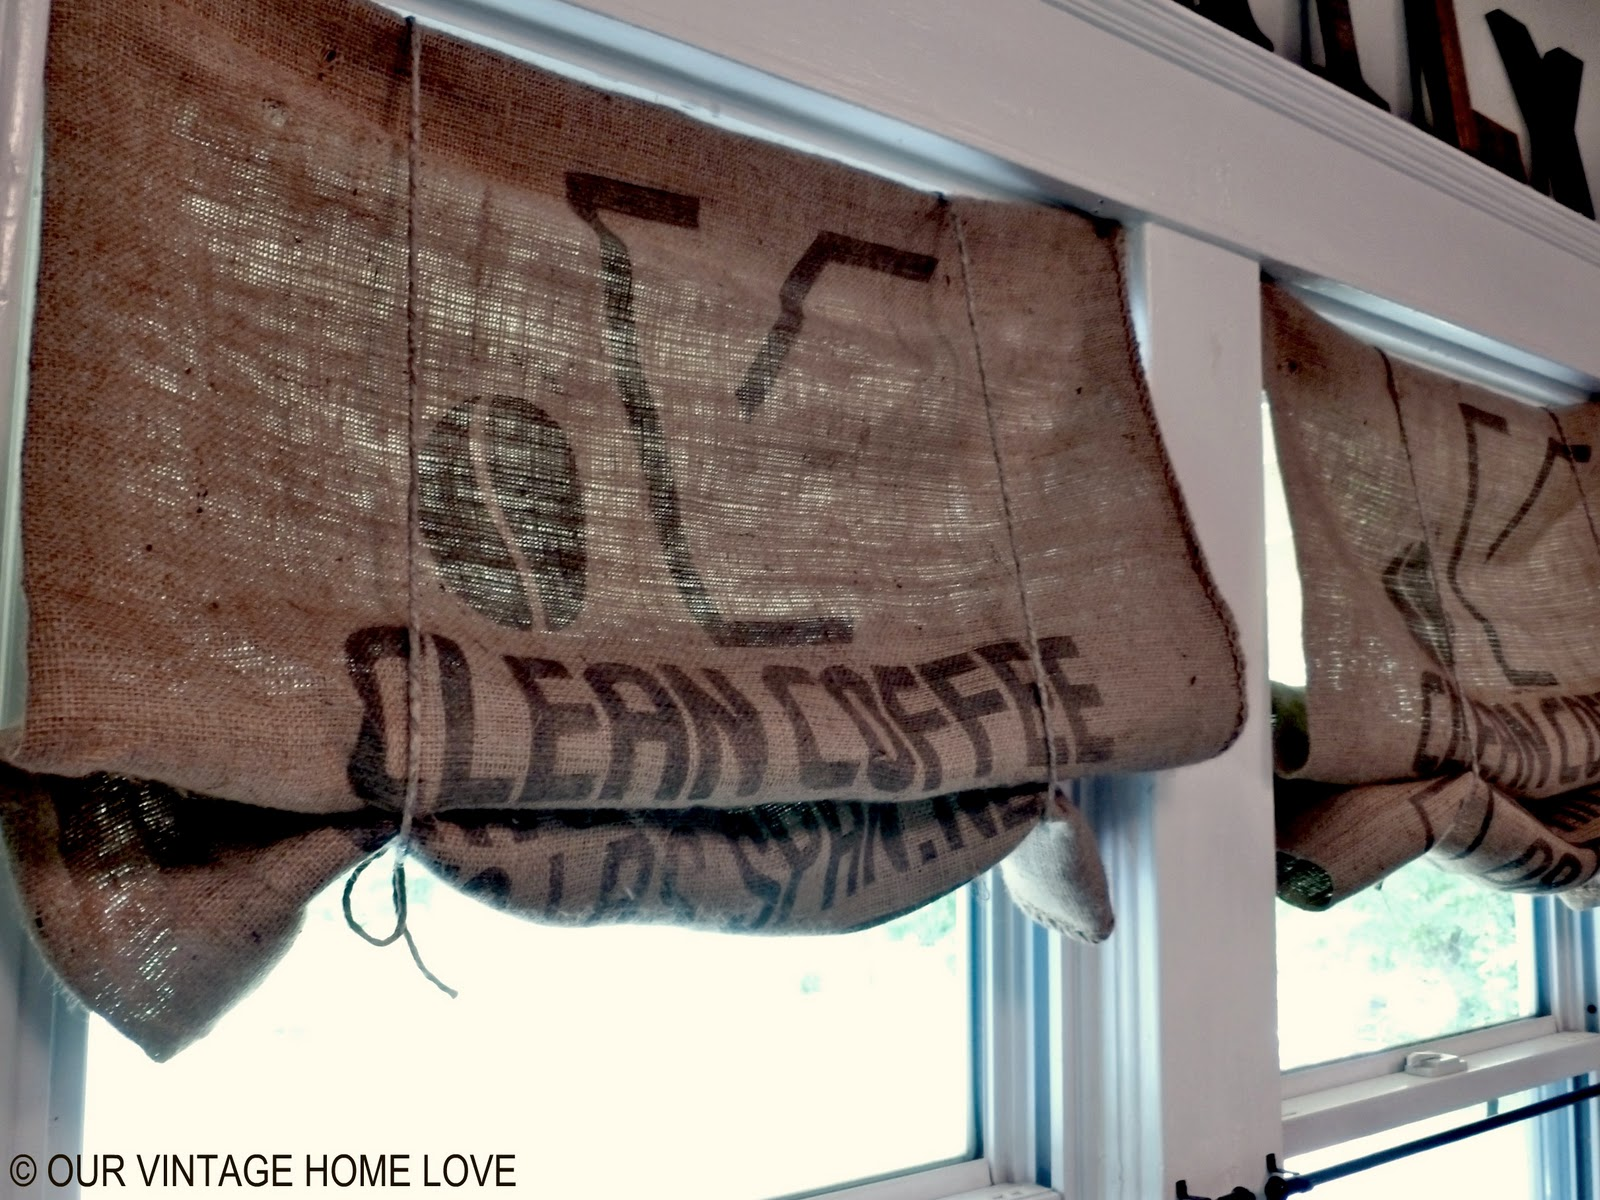 our vintage home love: Inexpensive Window Treatments and a Giveaway